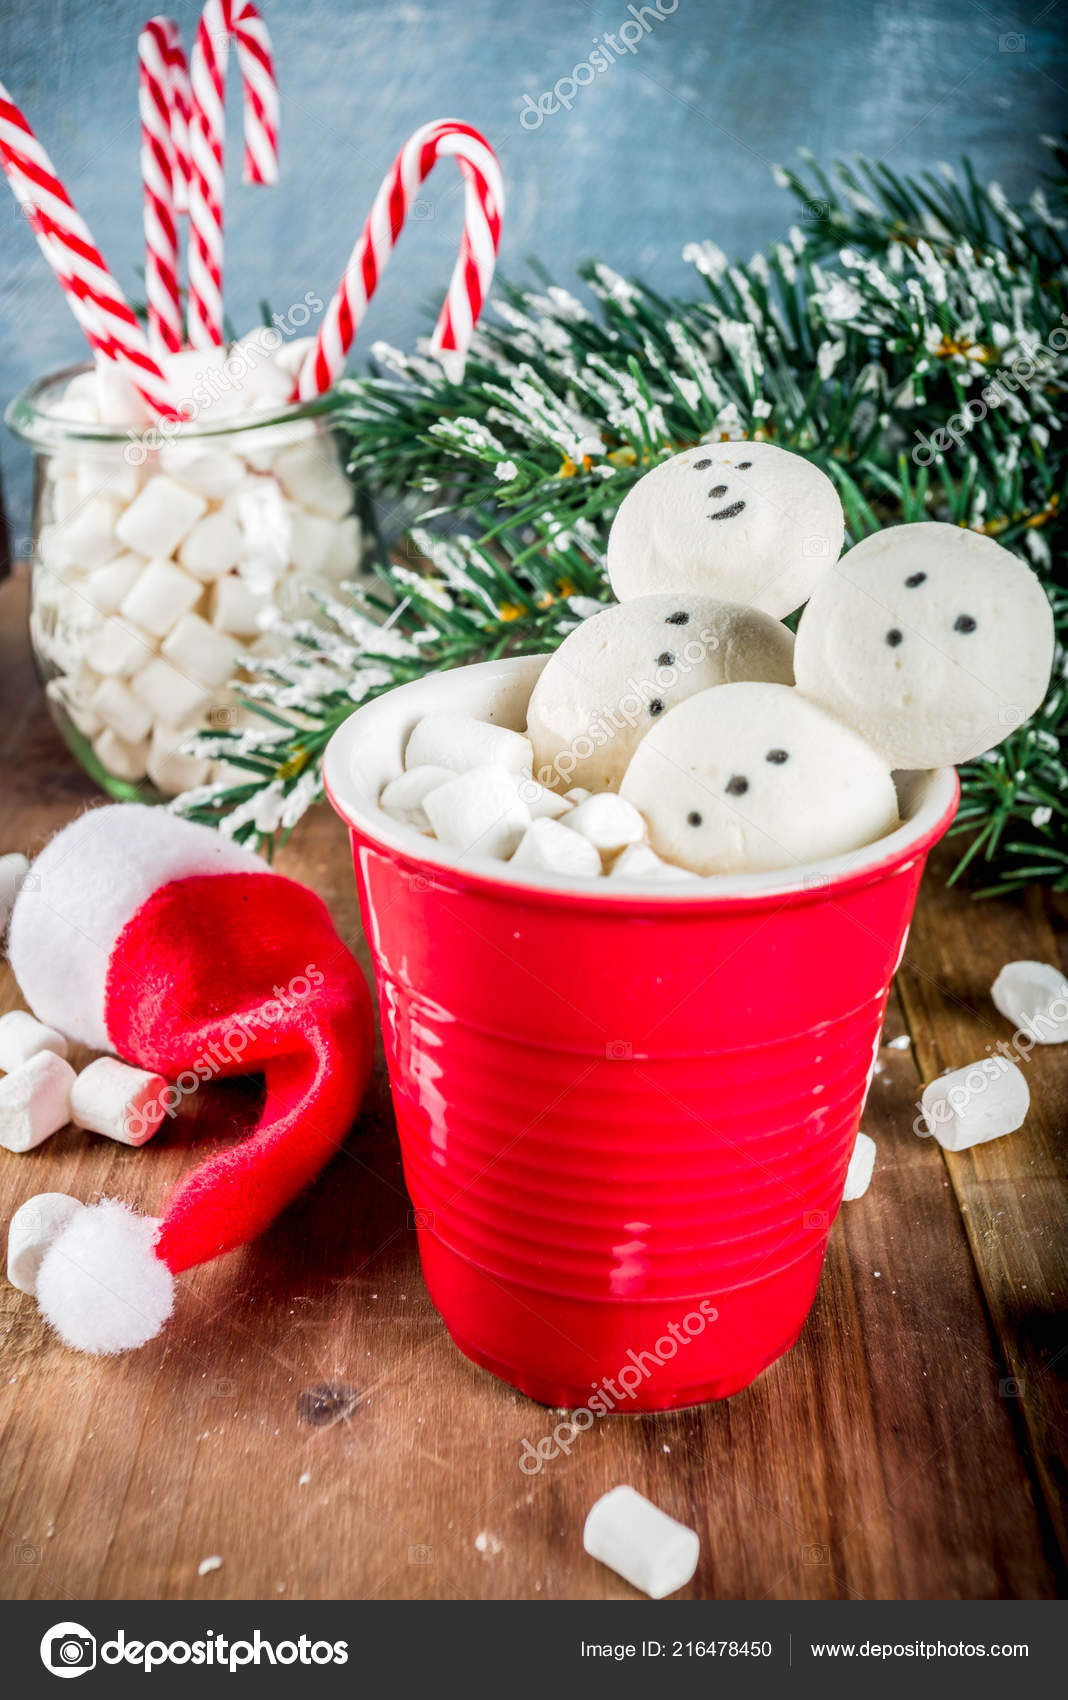 Hot Chocolate Creative Marshmallow Form Snowmen Christmas Decorations Box Wooden Stock Photo C Unixx 0 Gmail Com 216478450